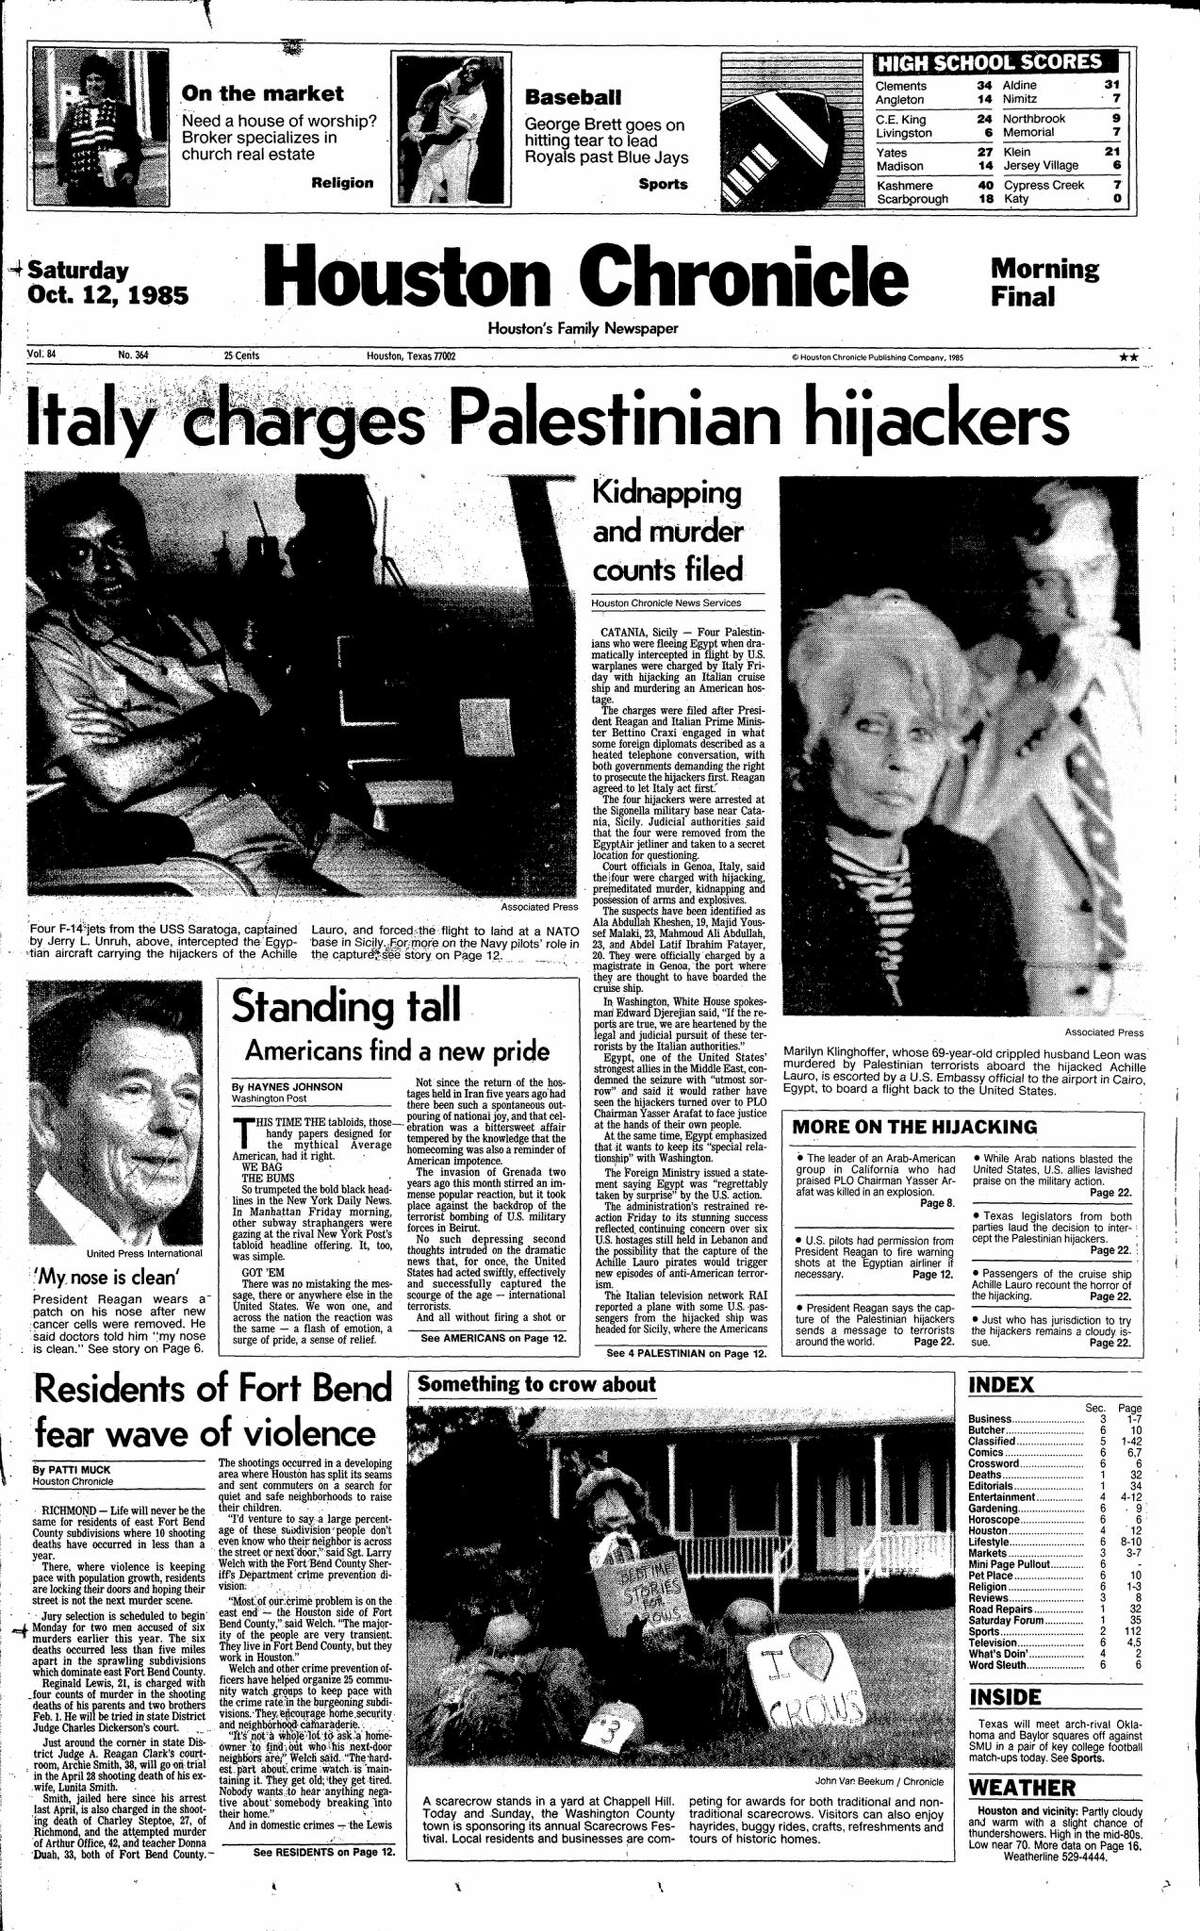 Houston Chronicle front page from Oct. 12, 1985.